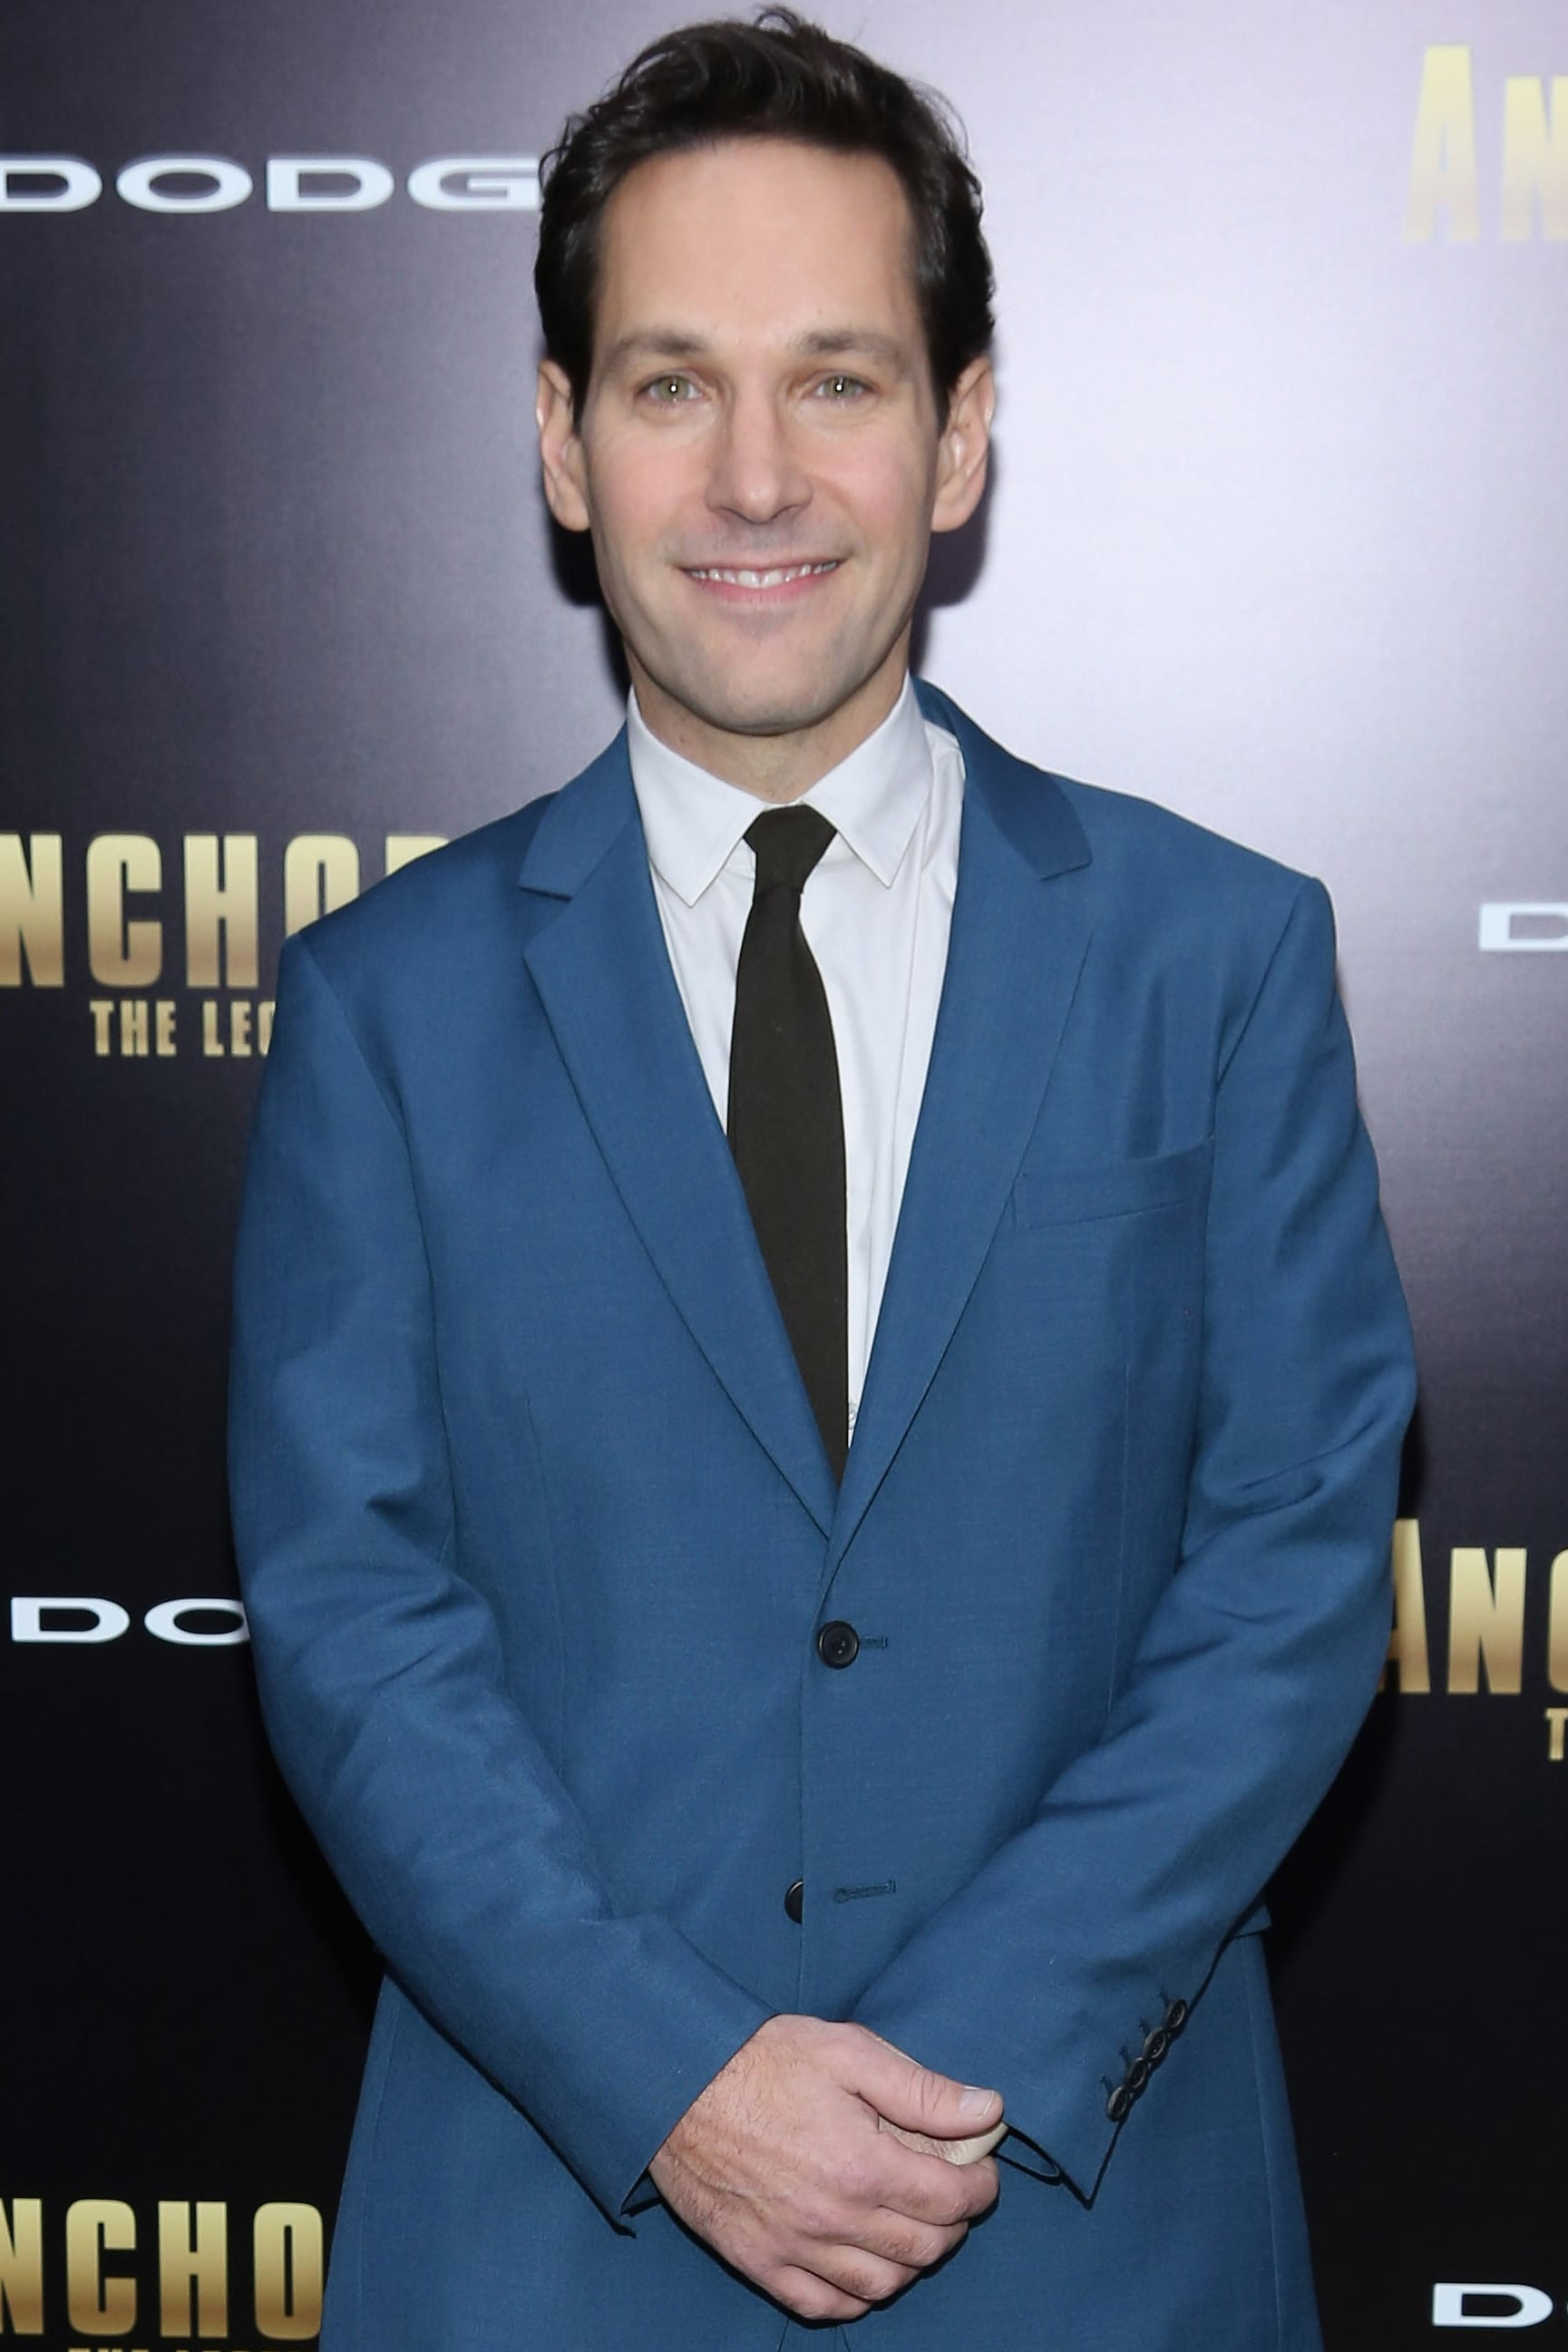 Paul Rudd will play Ant-Man (aka Hank Pym) in Marvel's newest superhero story to be directed by Edgar Wright.